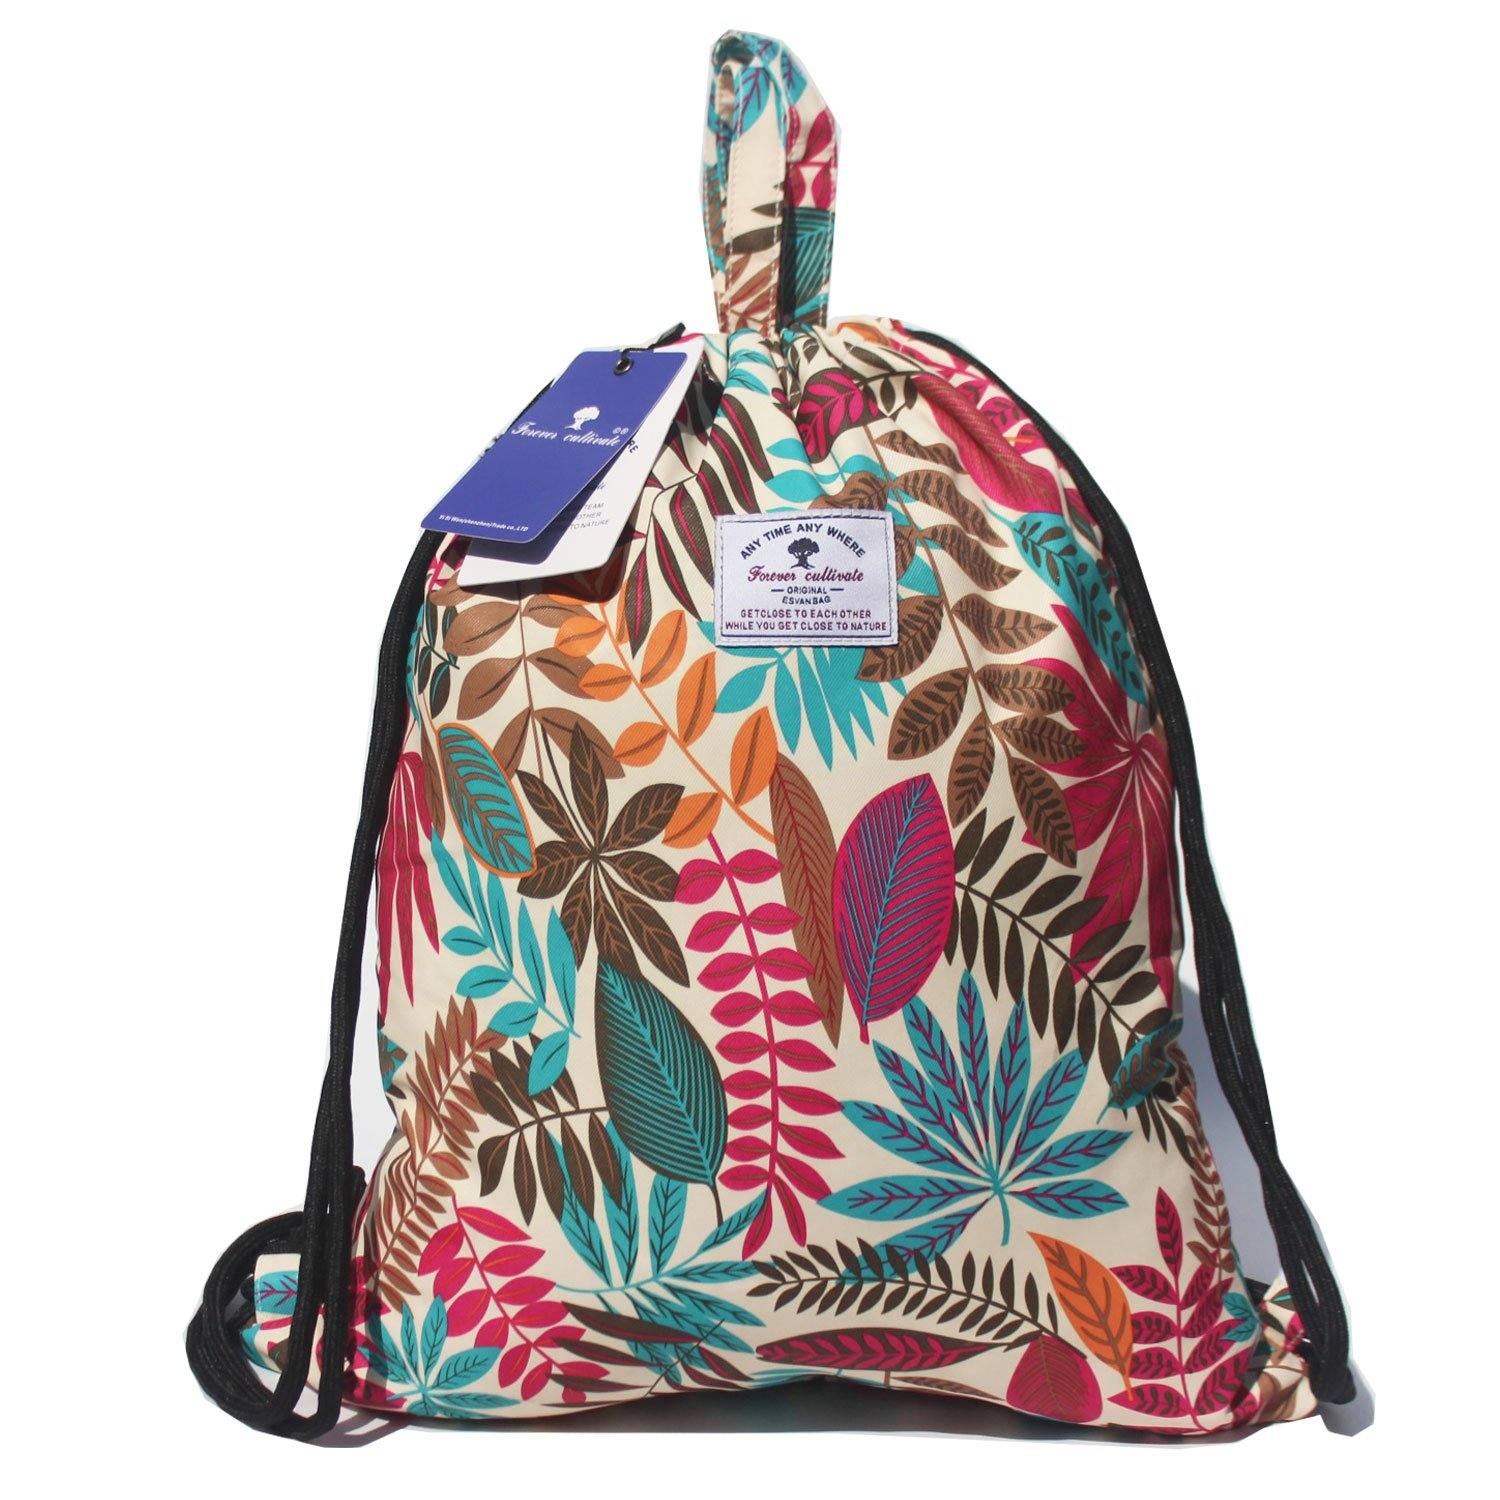 Drawstring Backpack Original Tote Bags for Gym Hiking Travel Beach 2 Sizes ([S] L Size - Flower Leaf)